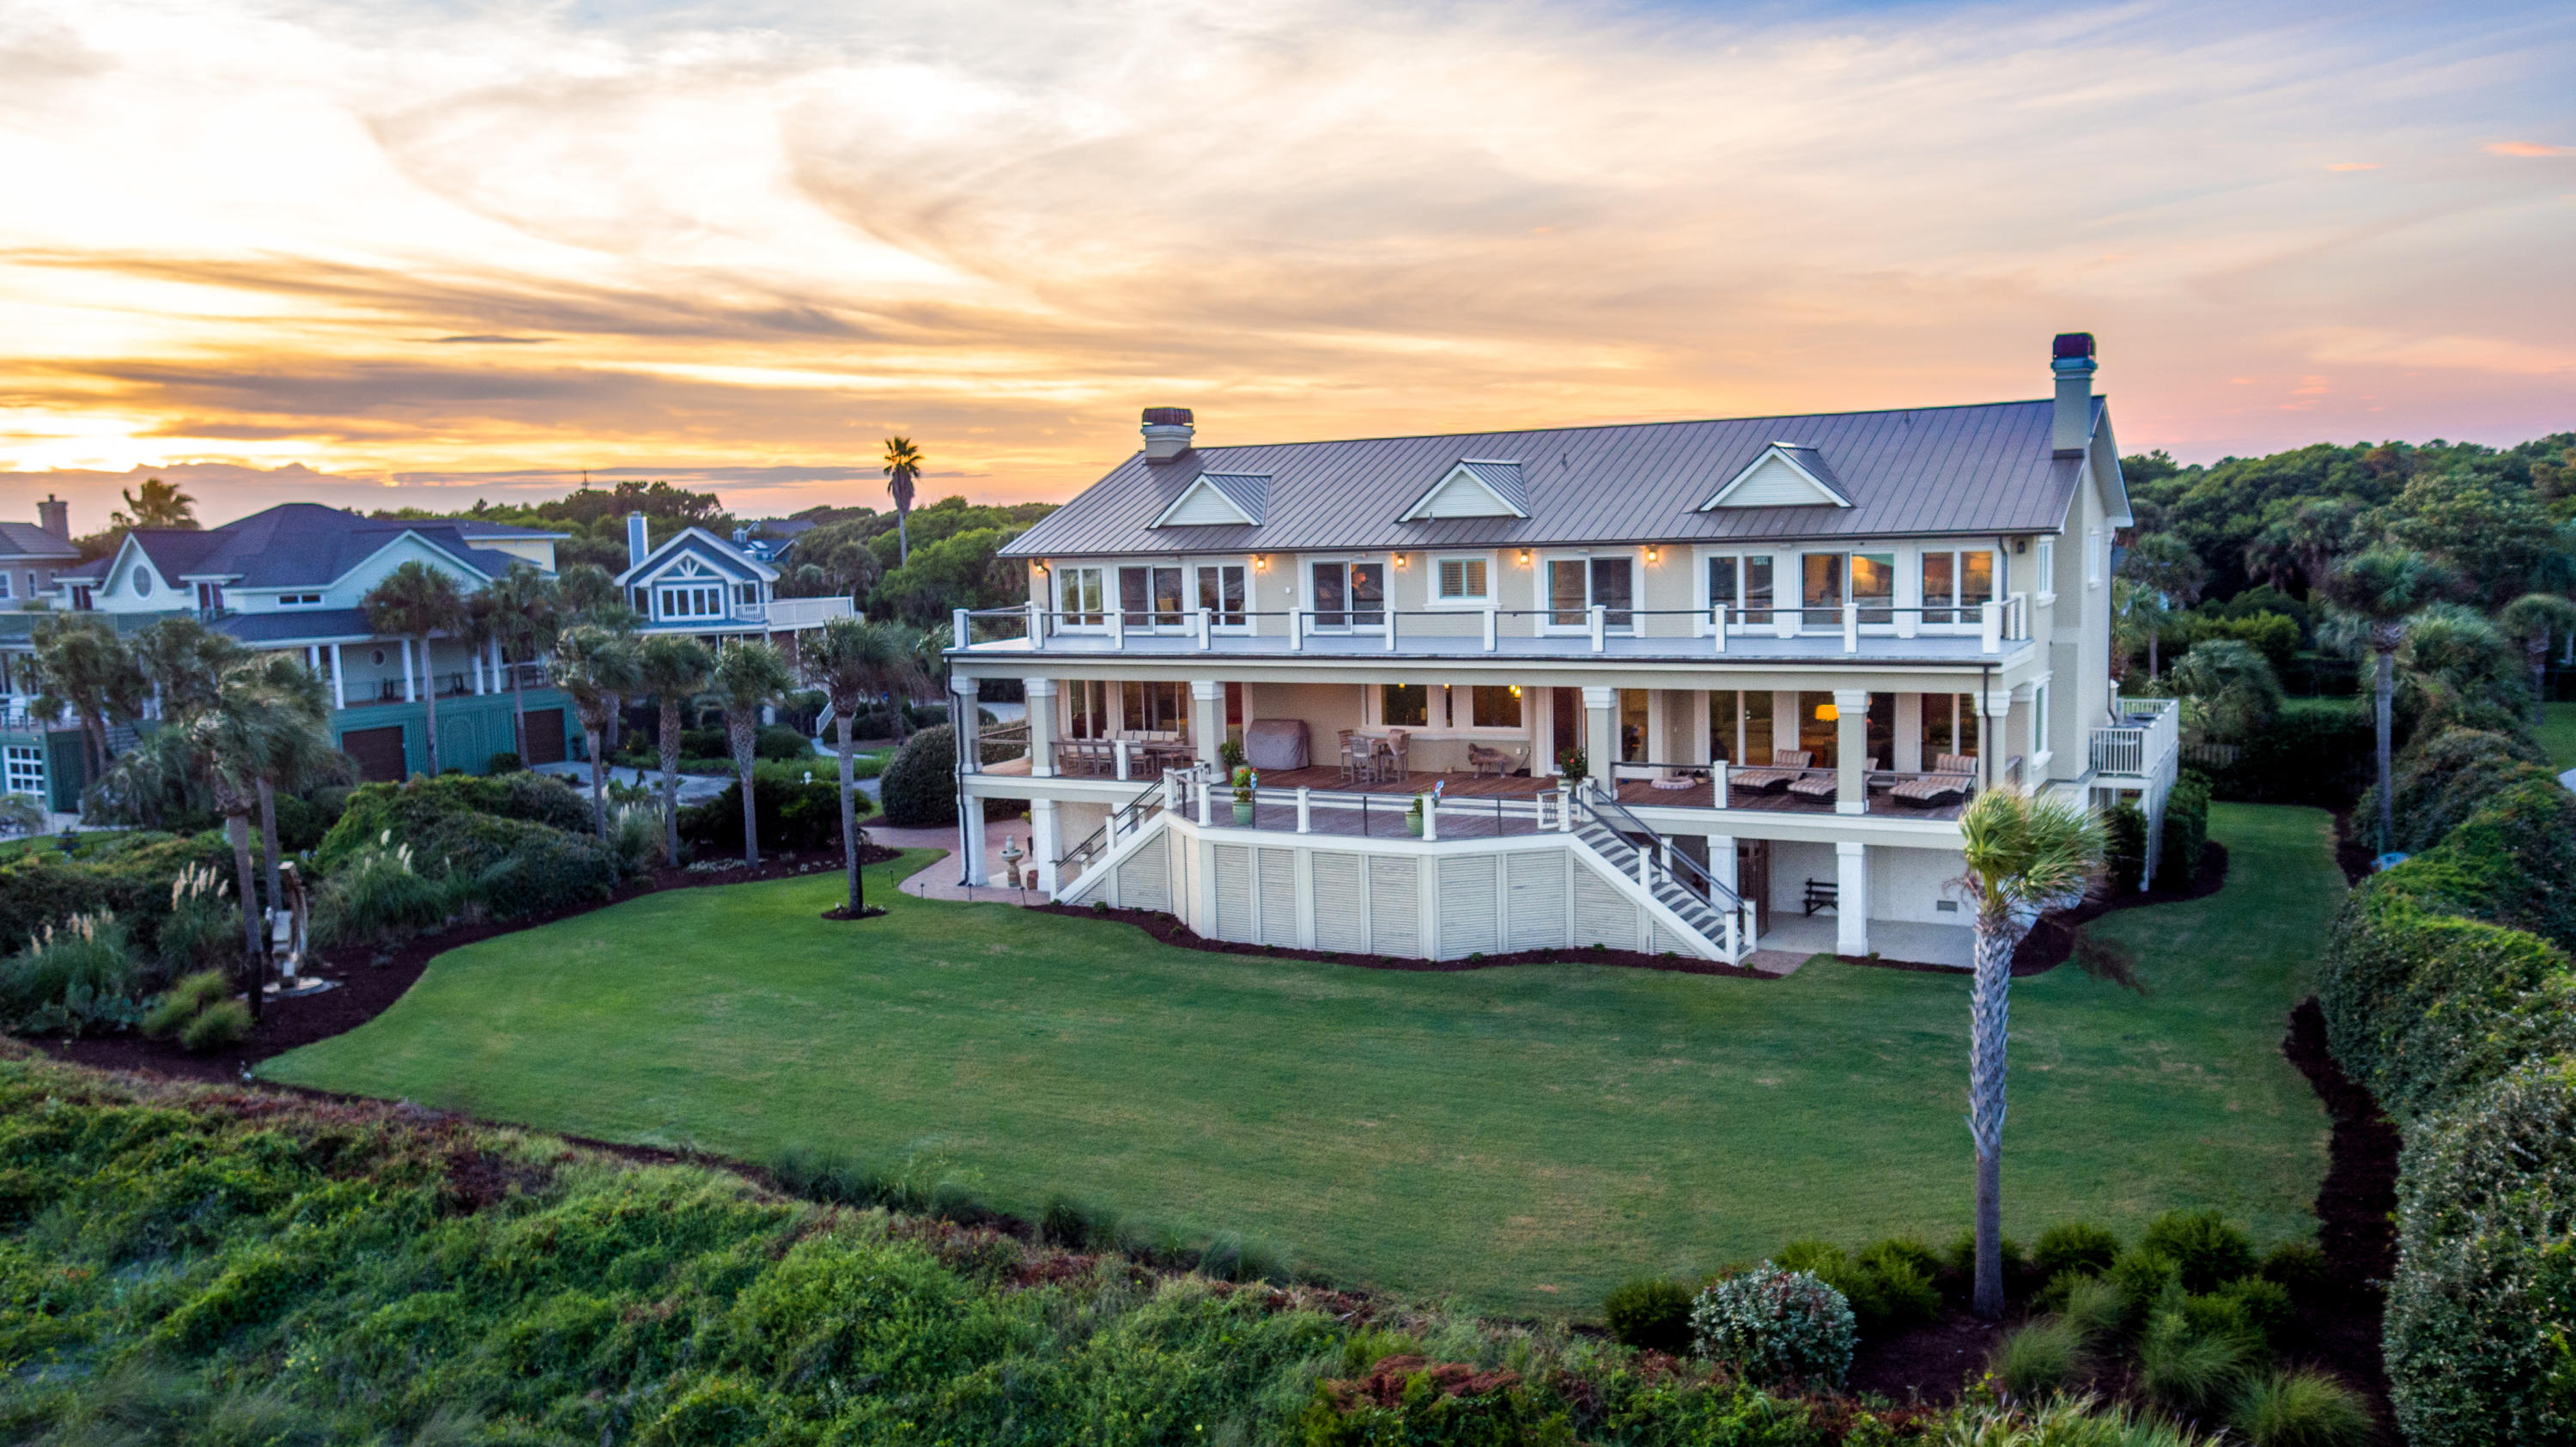 Isle of Palms Homes For Sale - 2 50th, Isle of Palms, SC - 2